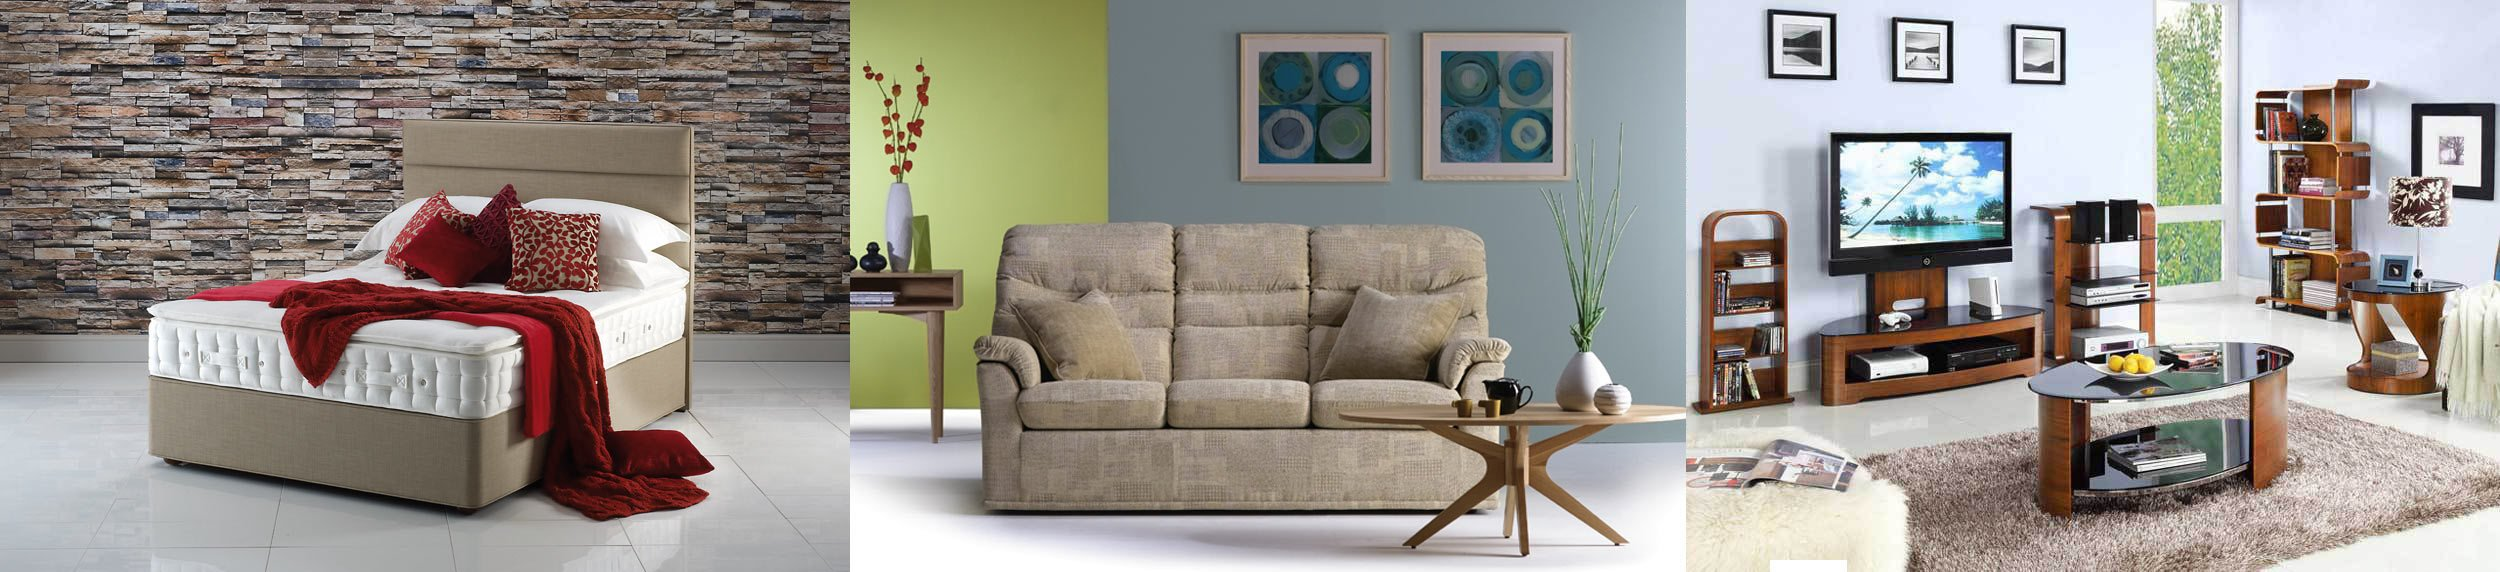 Bedrooms, sofas and other furniture in West Yorkshire